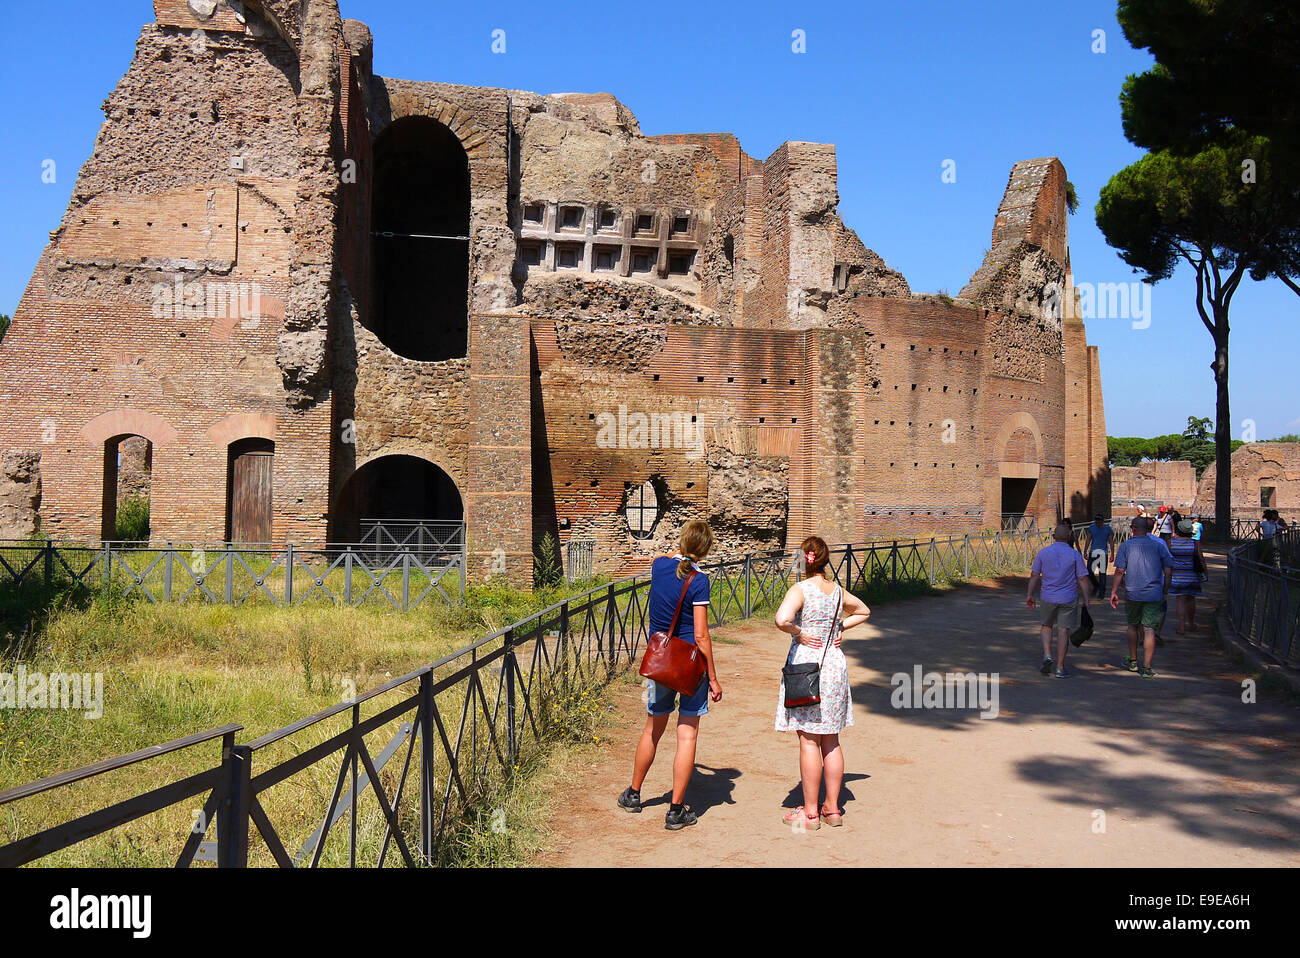 Palantine Hill, Rome, Italy. Part of the Imperial Palace. - Stock Image